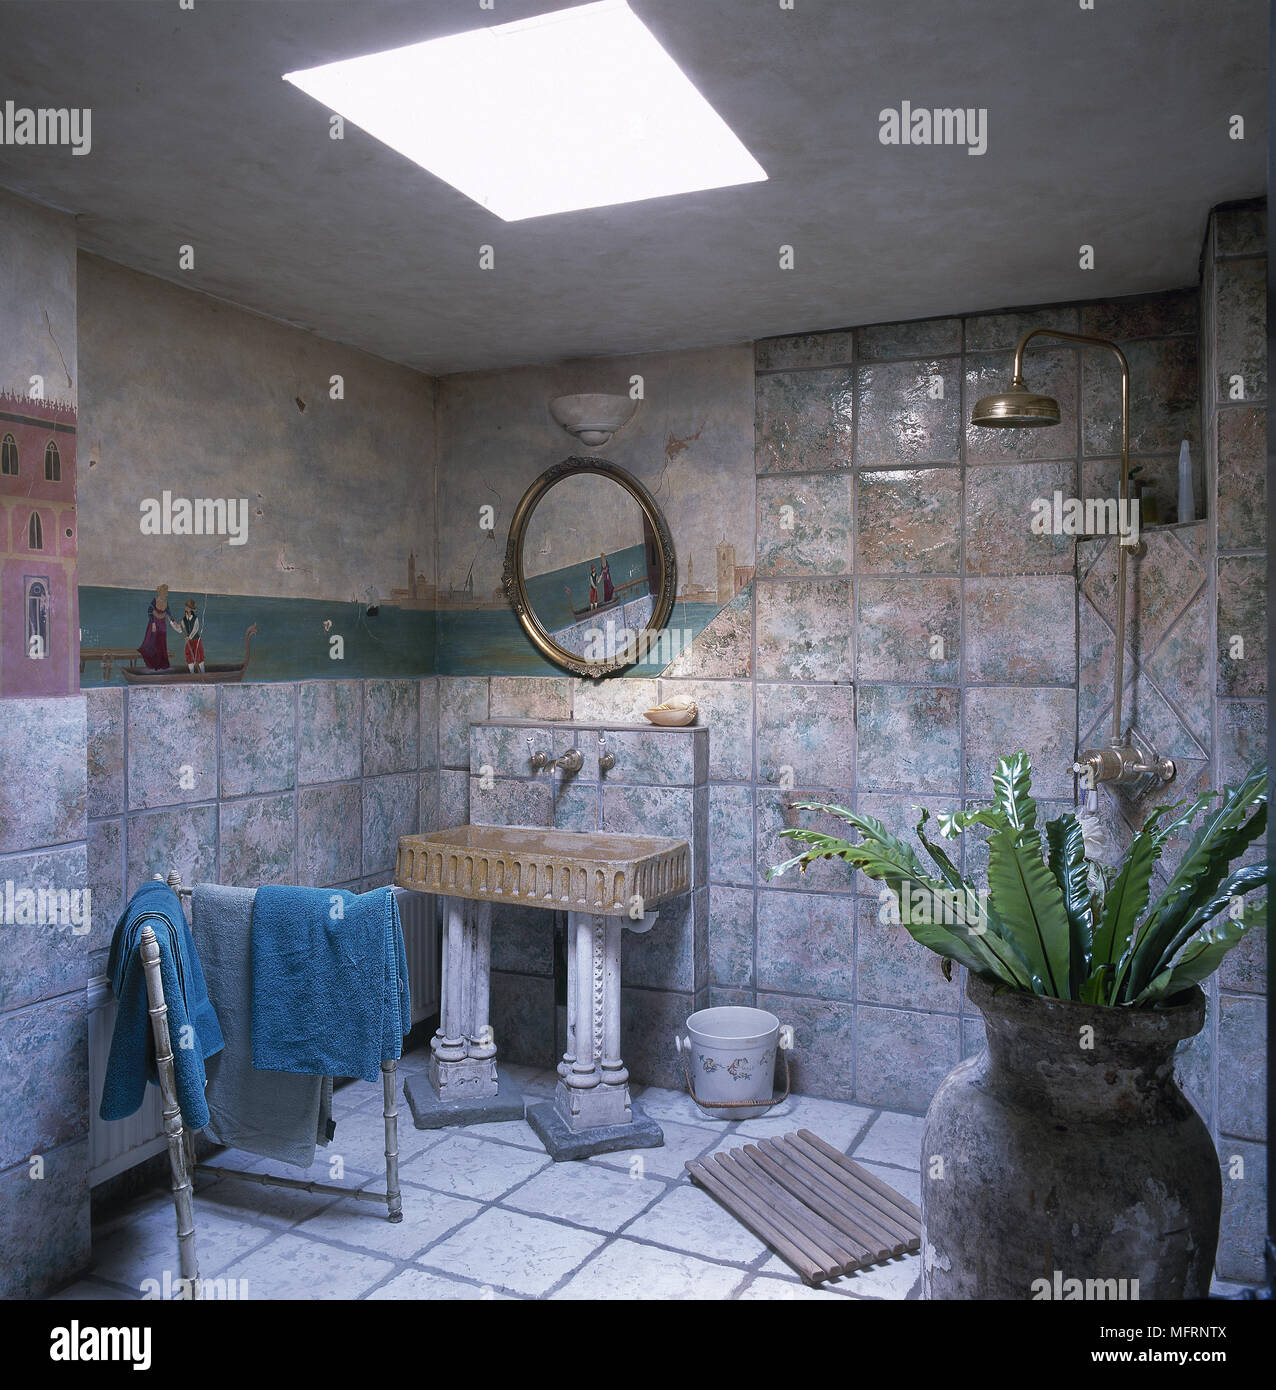 Swell Rustic Bathroom Wet Room With Stone Washbasin On Pedestals Download Free Architecture Designs Scobabritishbridgeorg